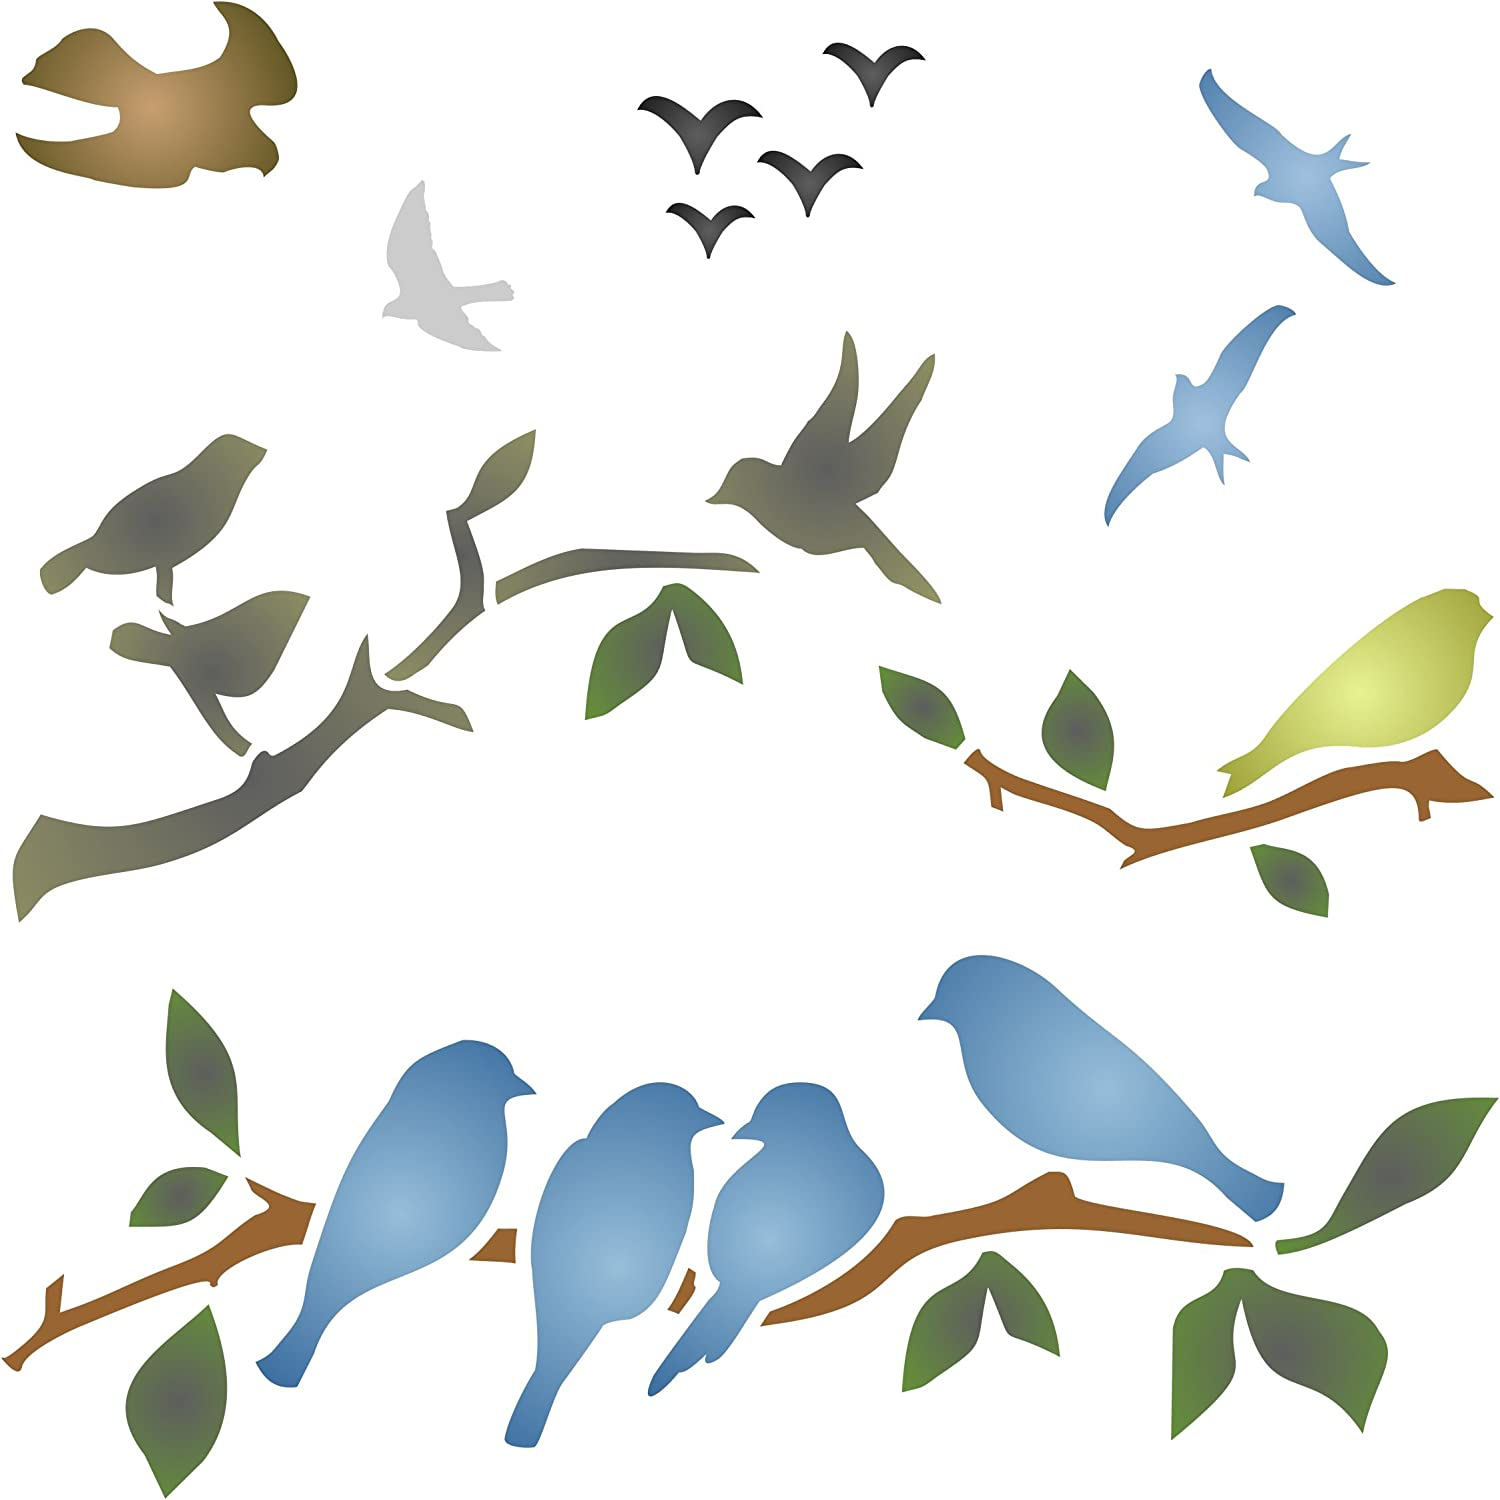 Birds on Branches Stencil, 4.5 x 4.5 inch (S) - Bird Branch Silhouette Stencils for Painting Template